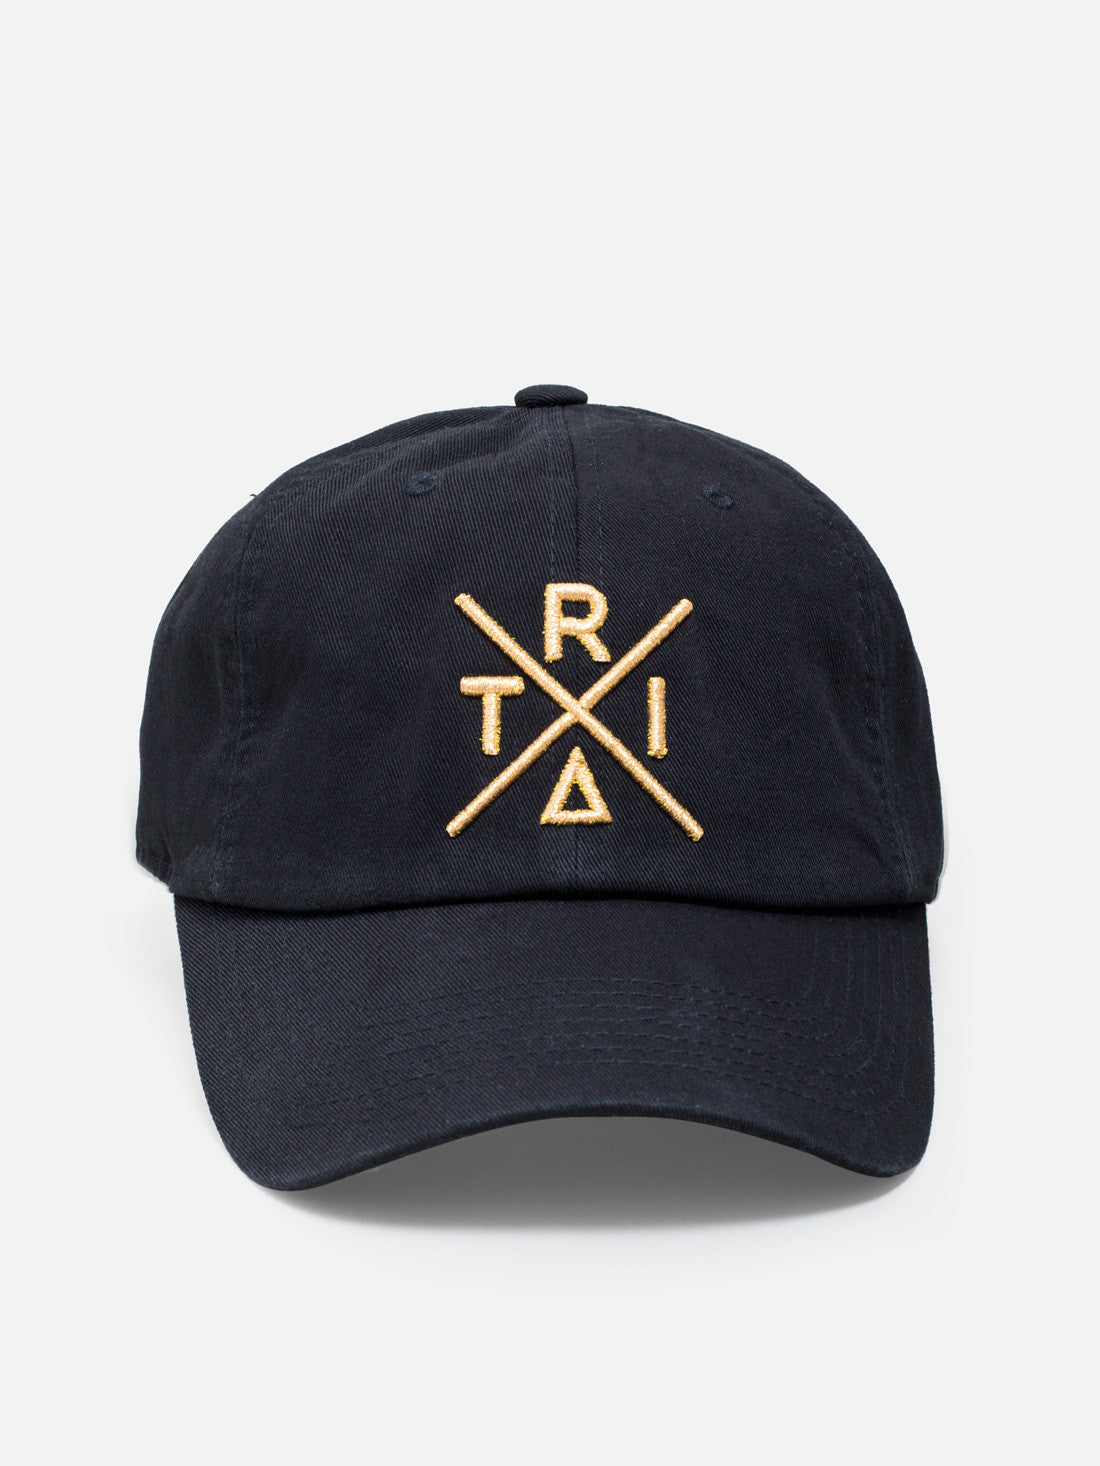 Dad hat black - X gold